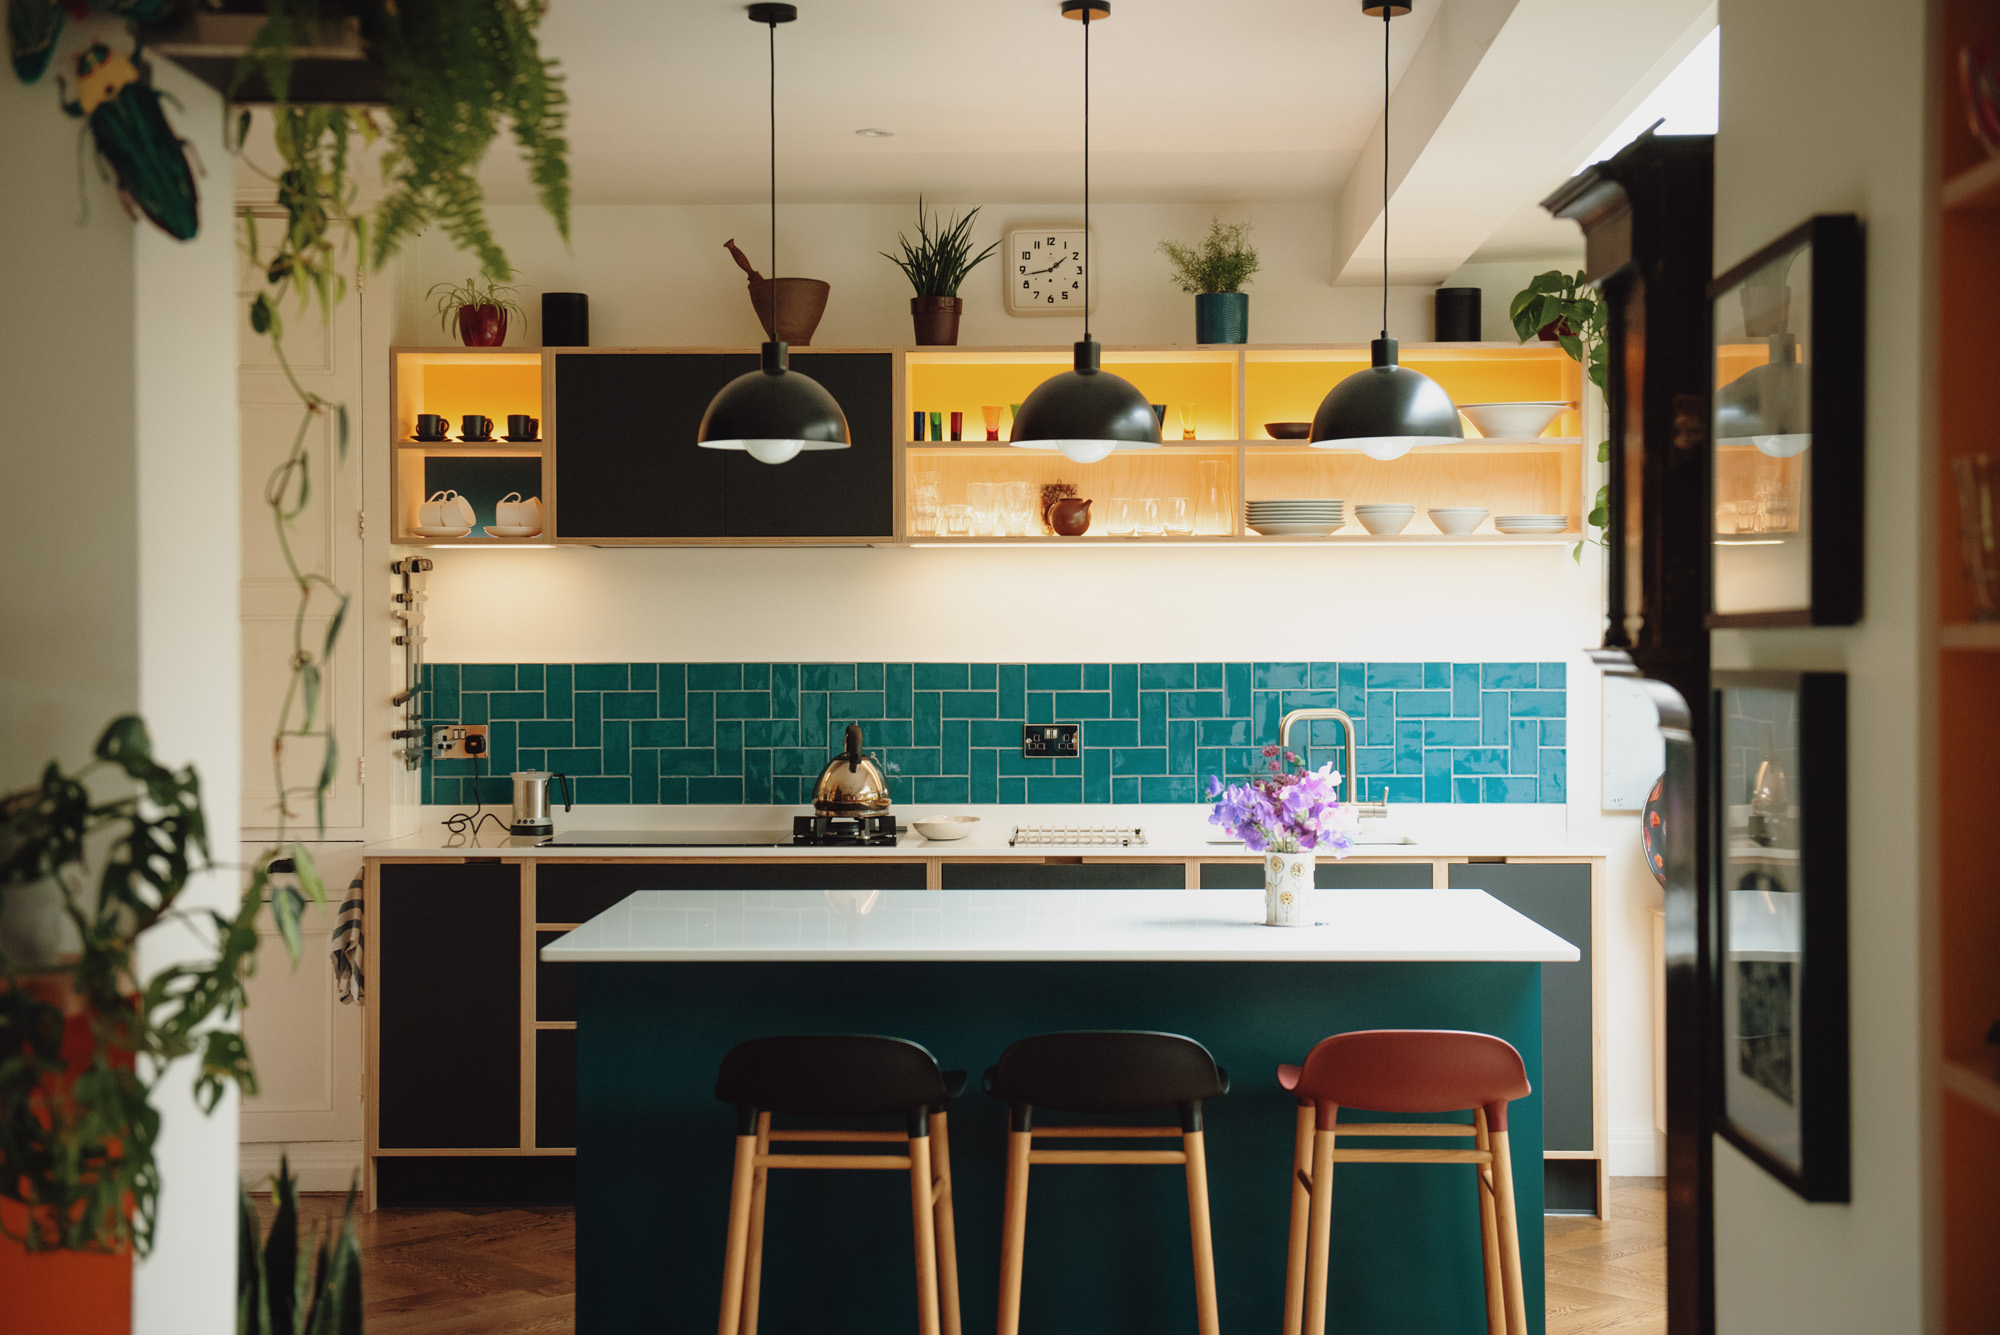 Kitchen in Black, yellow and blue